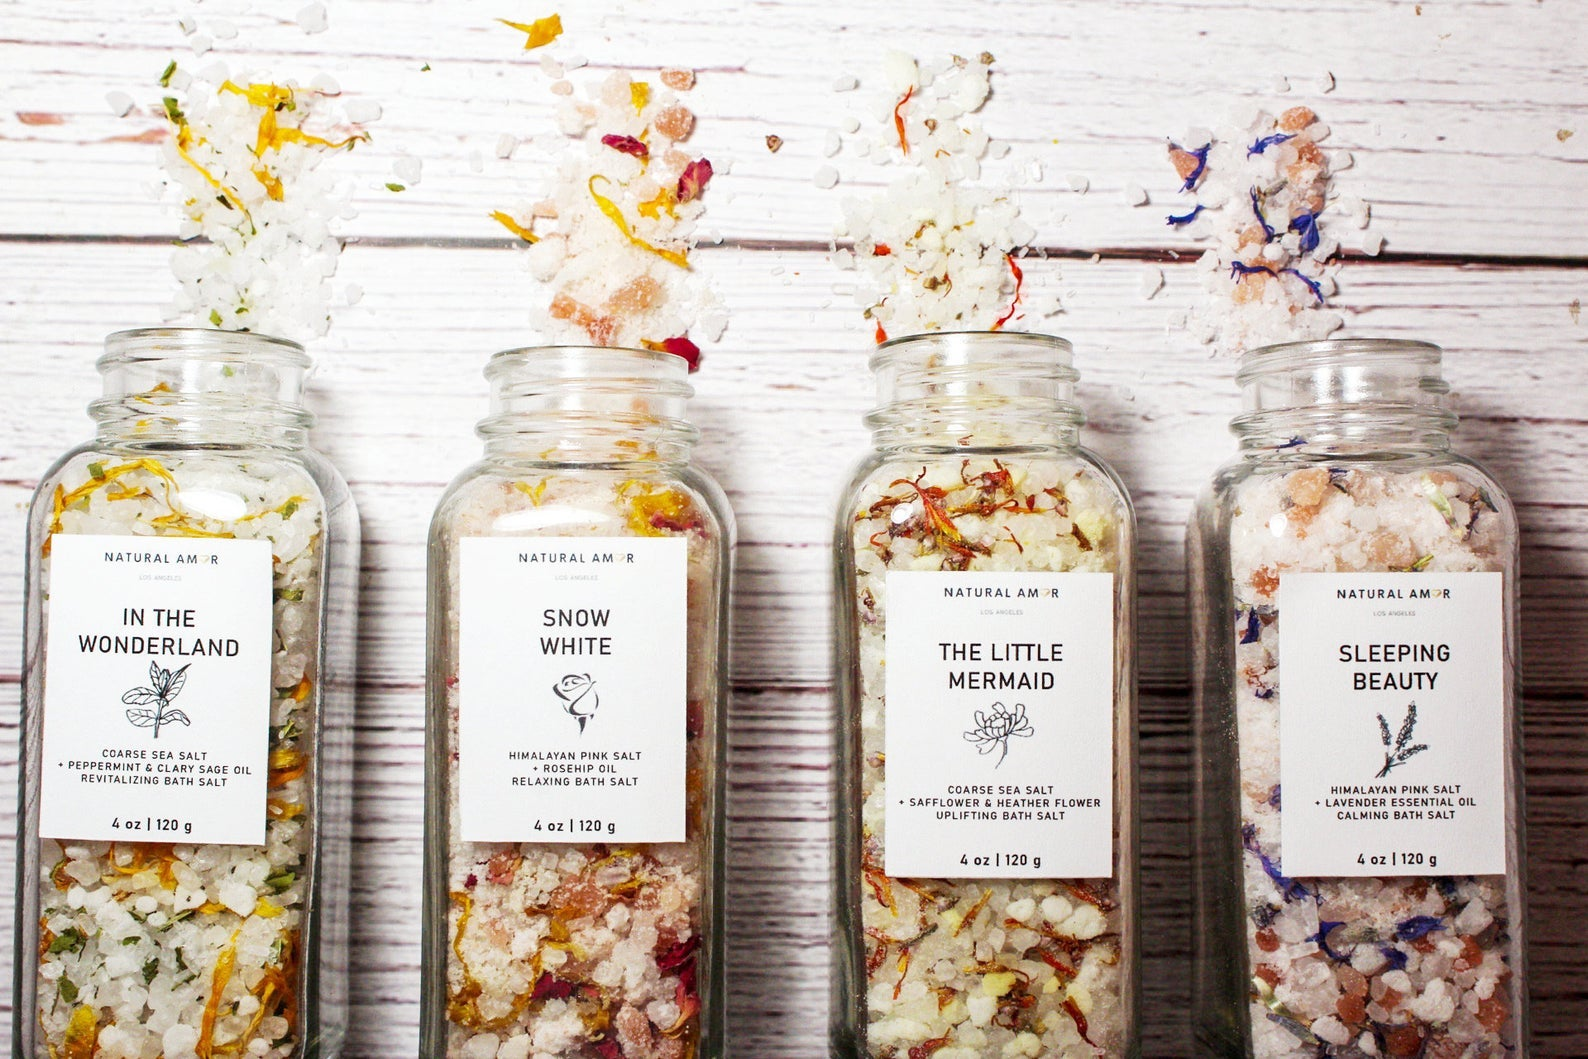 Colorful bath salts in transparent containers themed to fairy tales like Snow White, The Little Mermaid, Alice in Wonderland, and Sleeping Beauty